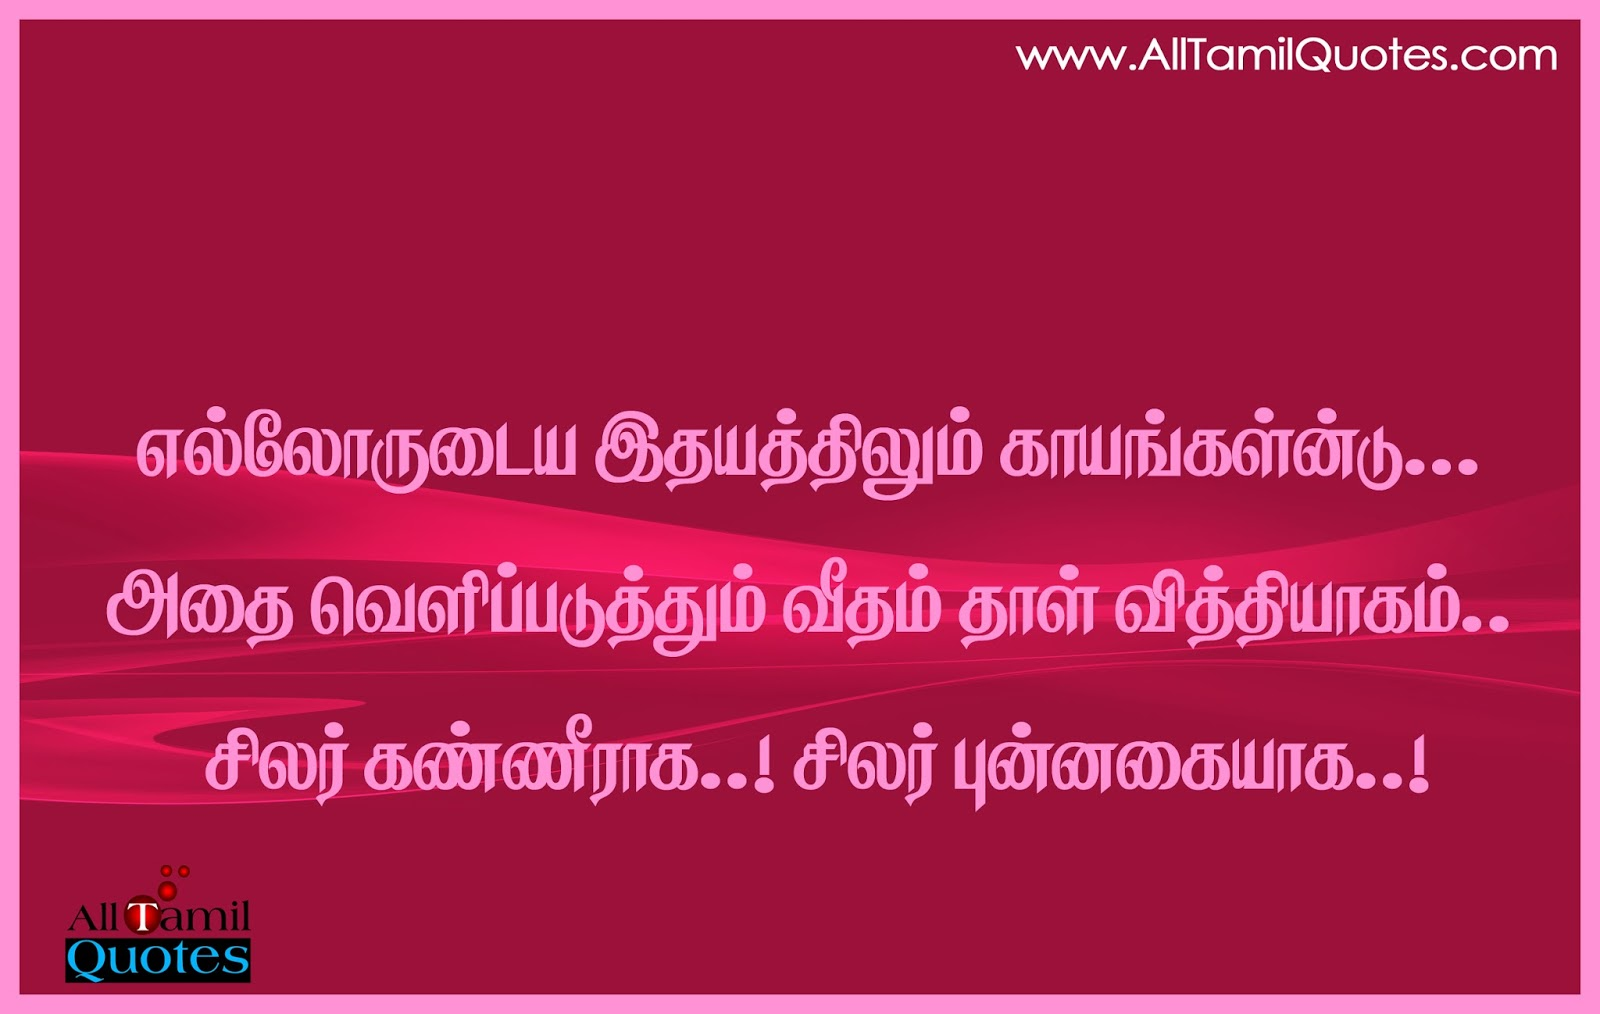 Life Quotes In Tamil Font Images Of Home Design